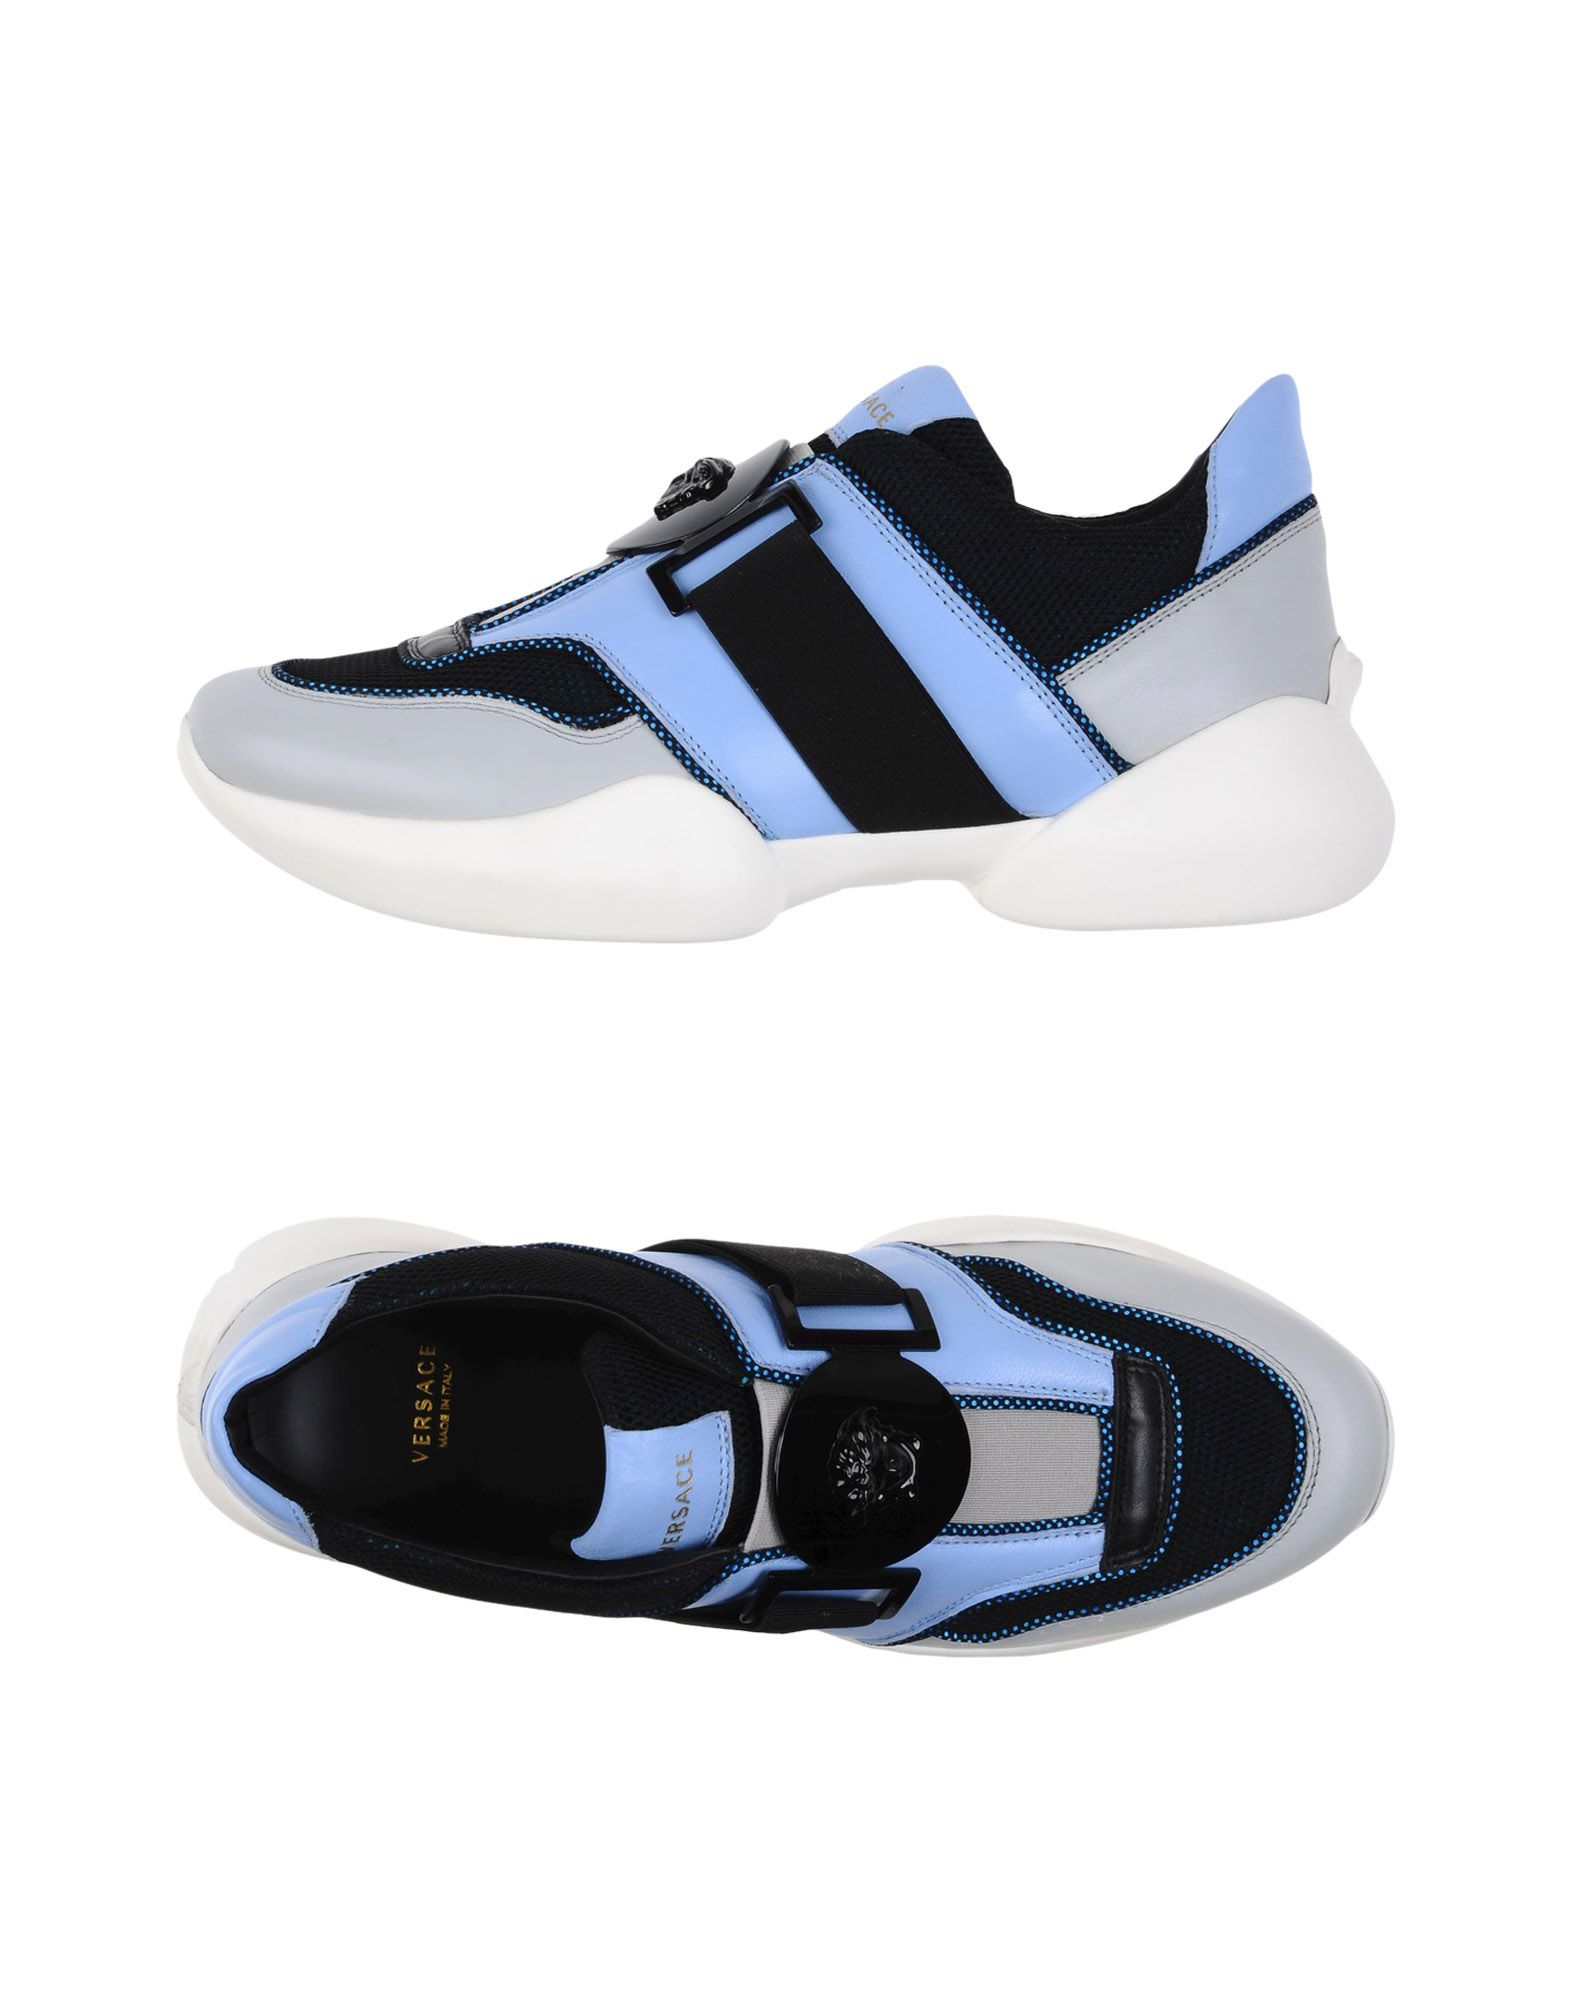 Versace Sneakers - Women Versace Sneakers 11284103KP online on  Australia - 11284103KP Sneakers 8f7255